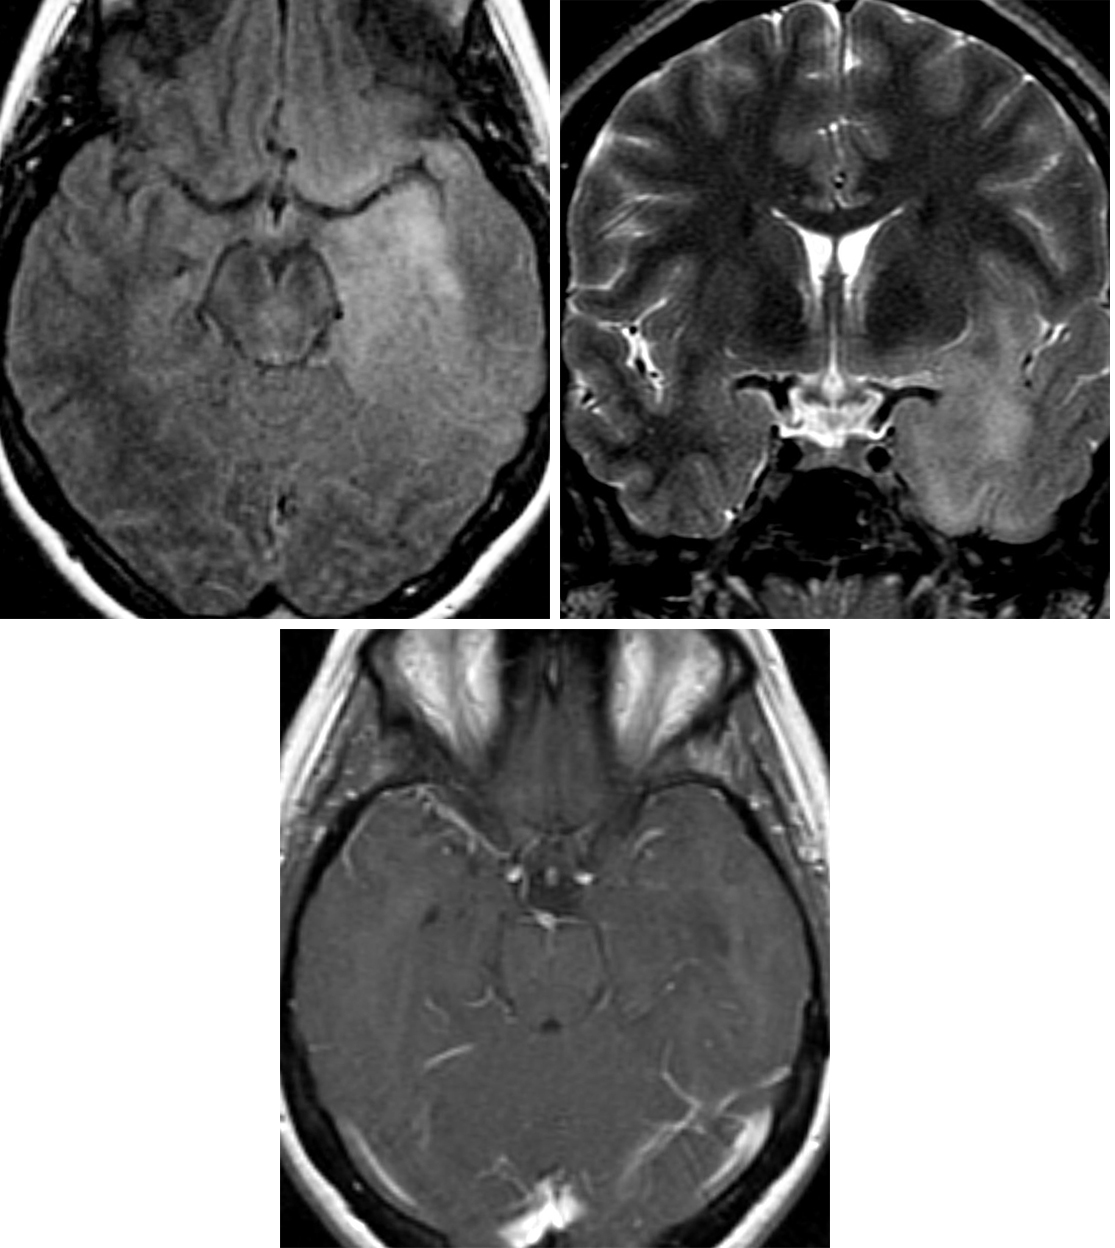 Figure 2: Axial FLAIR (top left) and coronal STIR (top right) images demonstrate a poorly defined infiltrative, hyperintense lesion involving the left temporal lobe, left insula, and inferior left frontal lobe. (Bottom) T1WI after contrast administration shows no contrast enhancement of this low-grade astrocytoma.